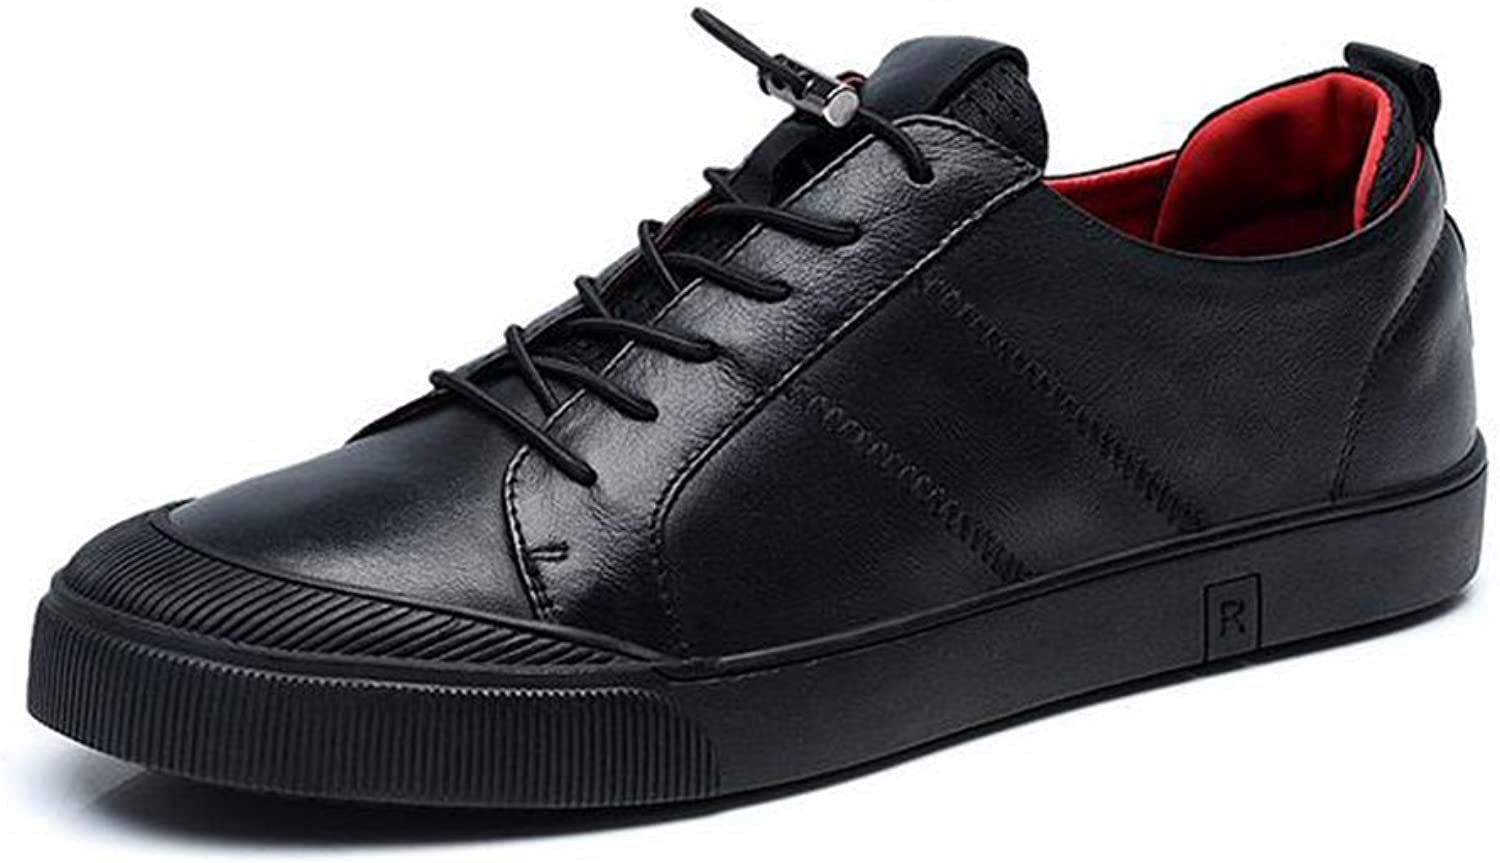 HUAN Mens Casual shoes Leather Deck shoes Lace-up Flat Loafers Sneakers Comfort Driving shoes